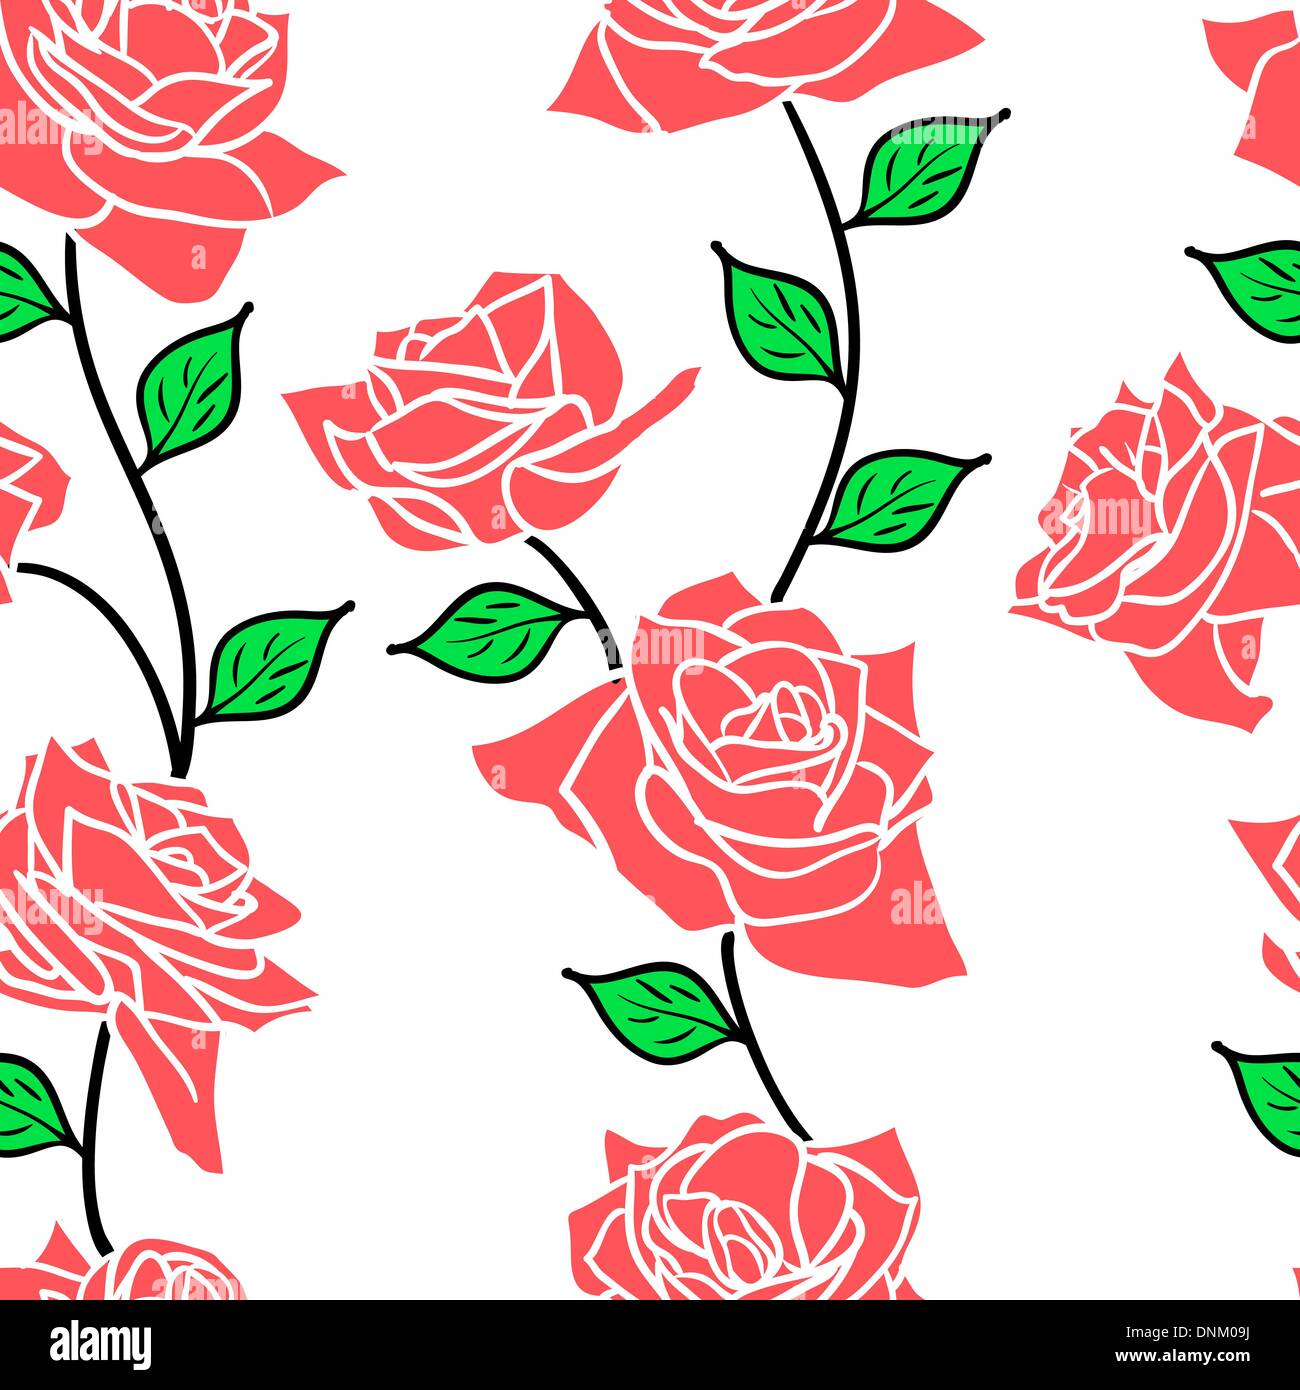 Beautiful  seamless wallpaper with rose flowers, vector illustration - Stock Image